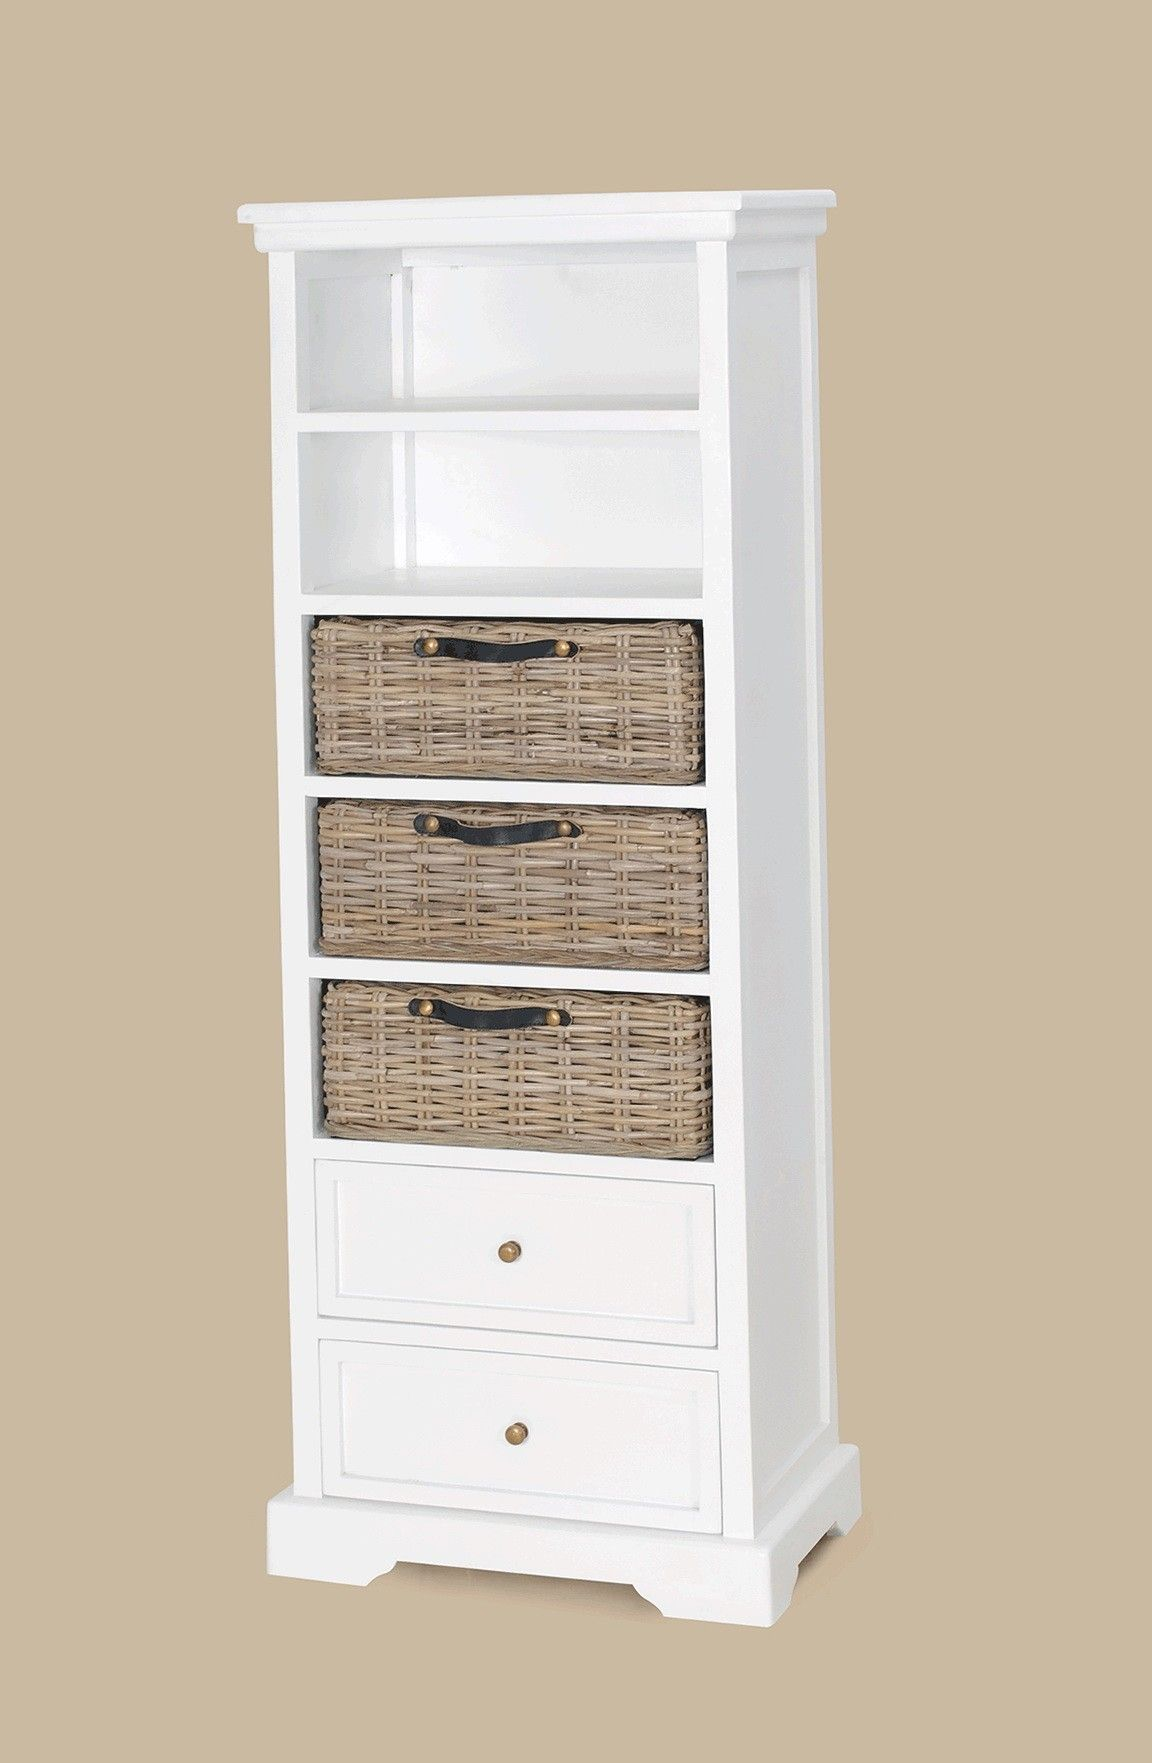 Furniture. Tall White Wooden Bookcase With Double Racks